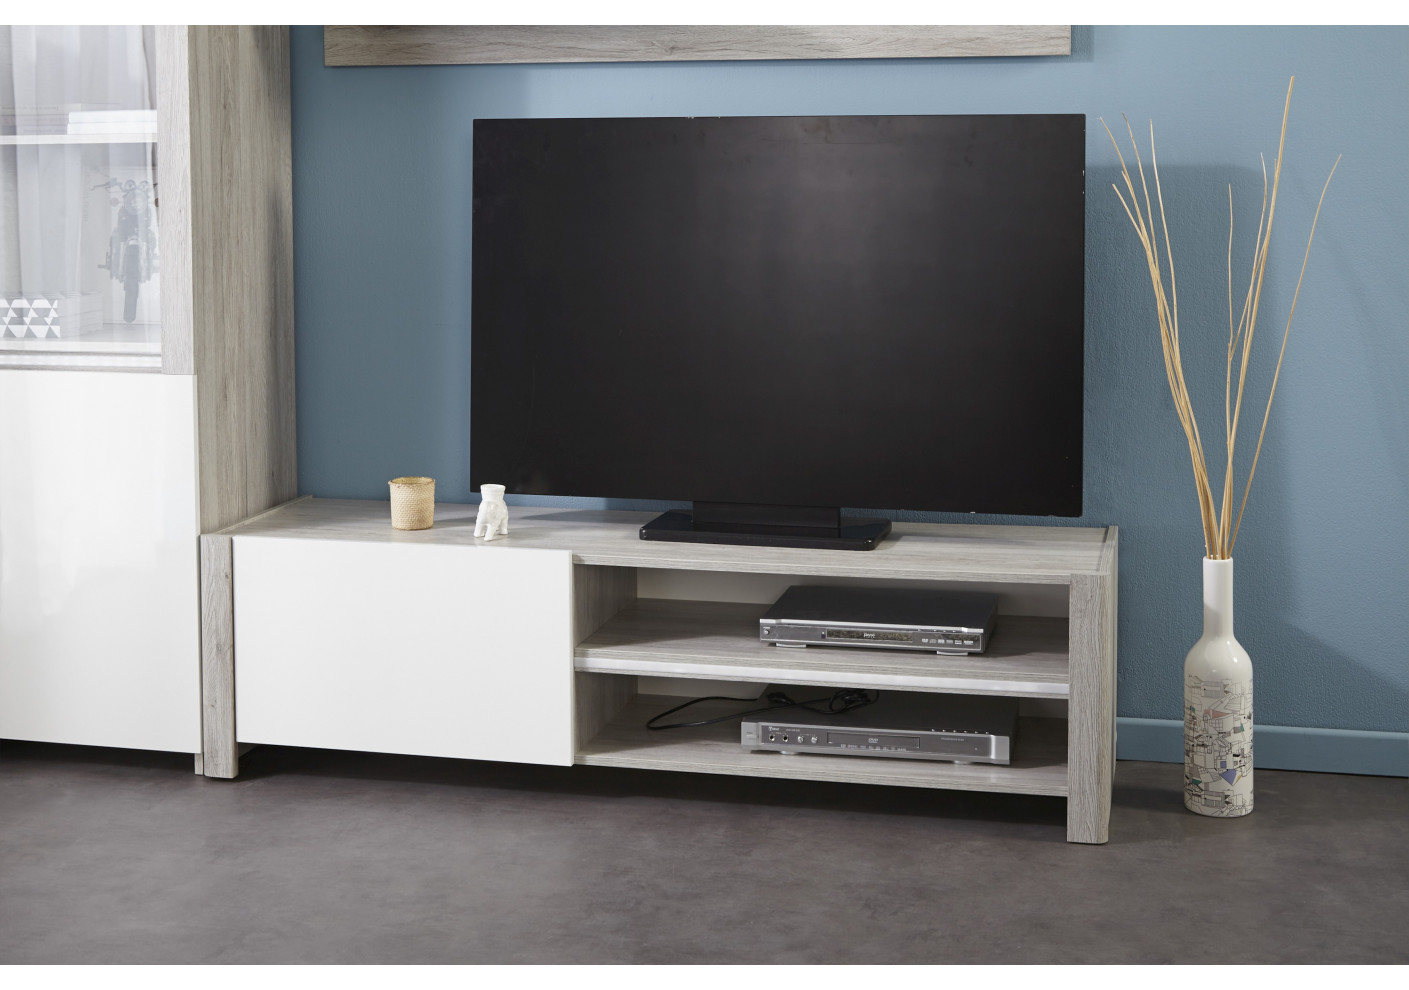 meuble tv lumiled blanc brillant et gris meubles tv salon. Black Bedroom Furniture Sets. Home Design Ideas